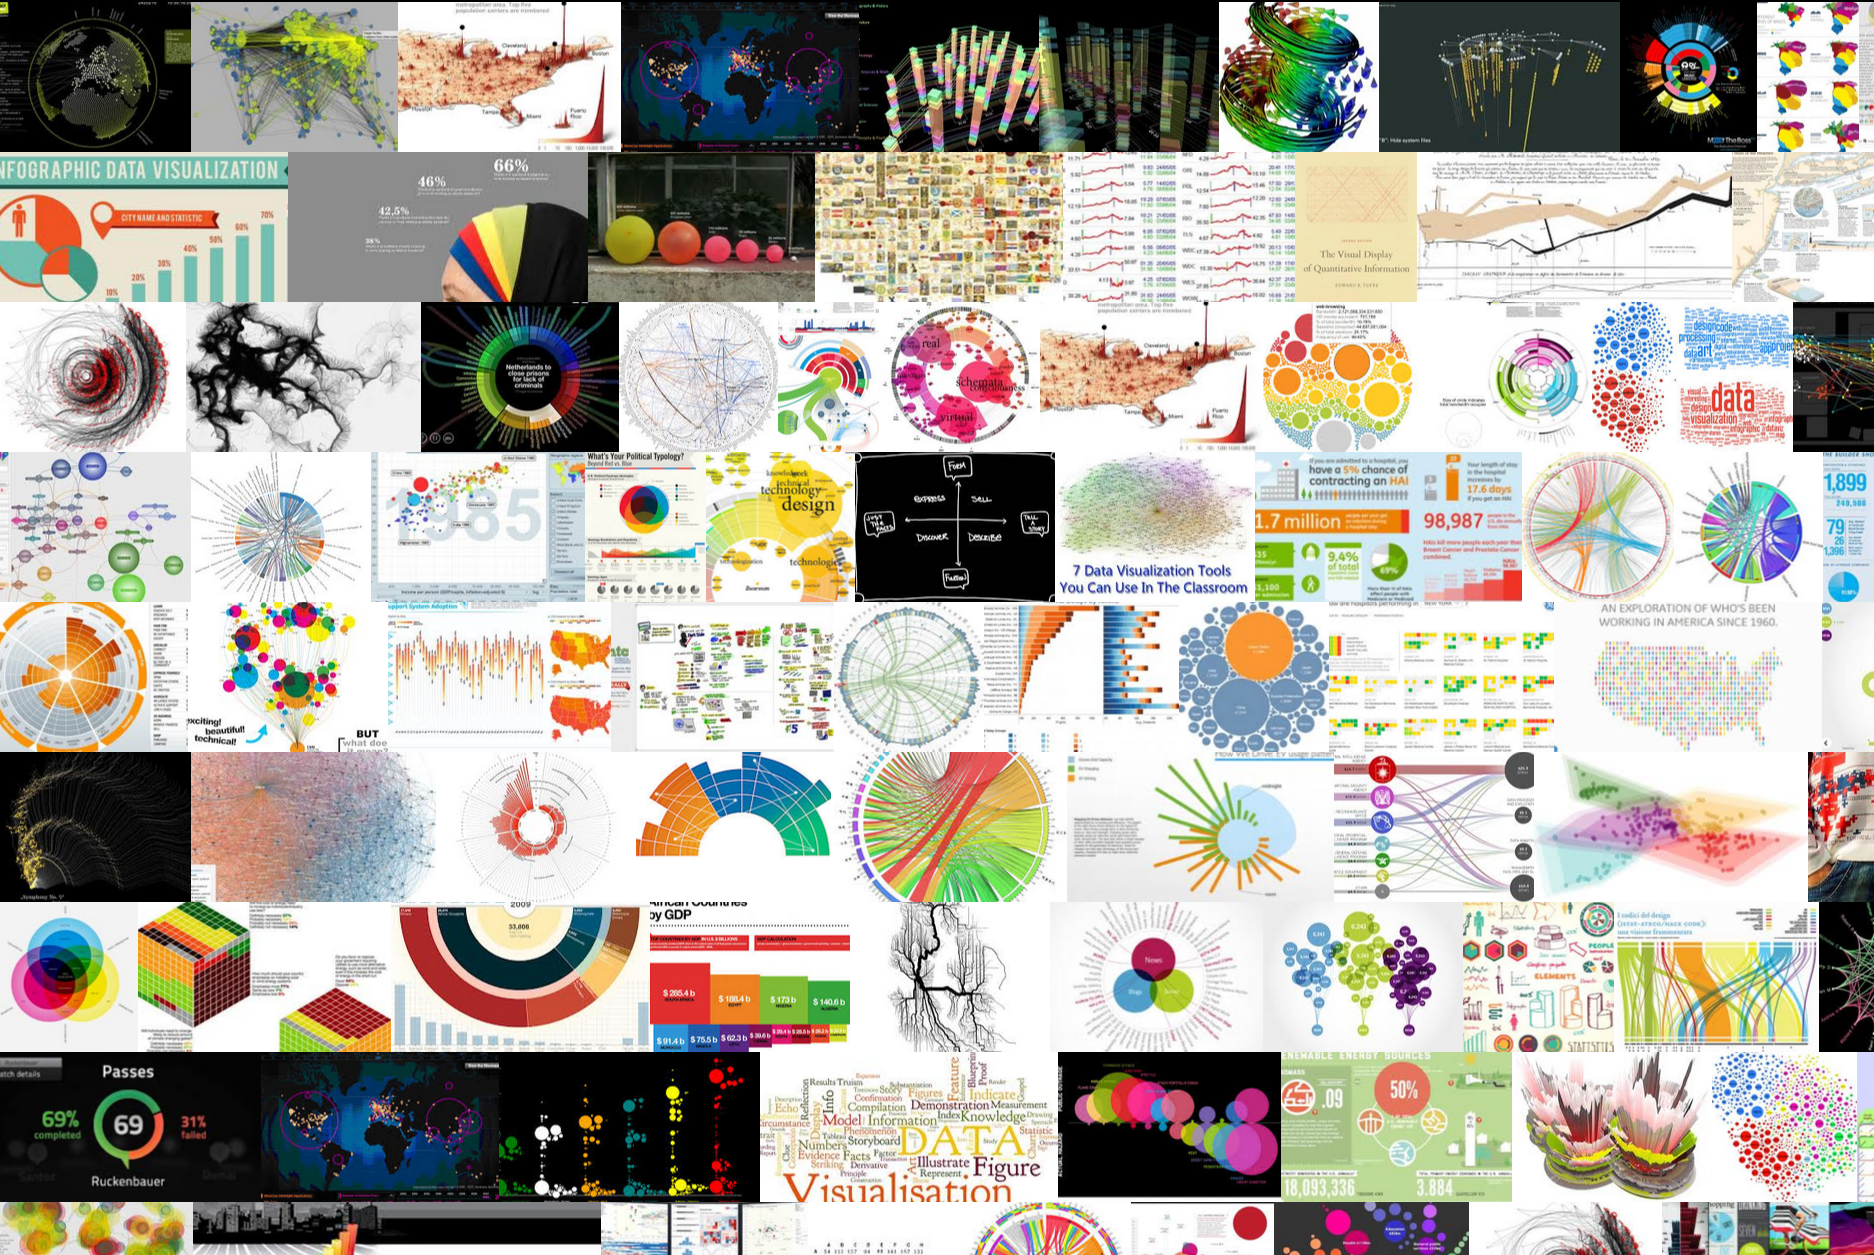 Search Term: Data Visualization